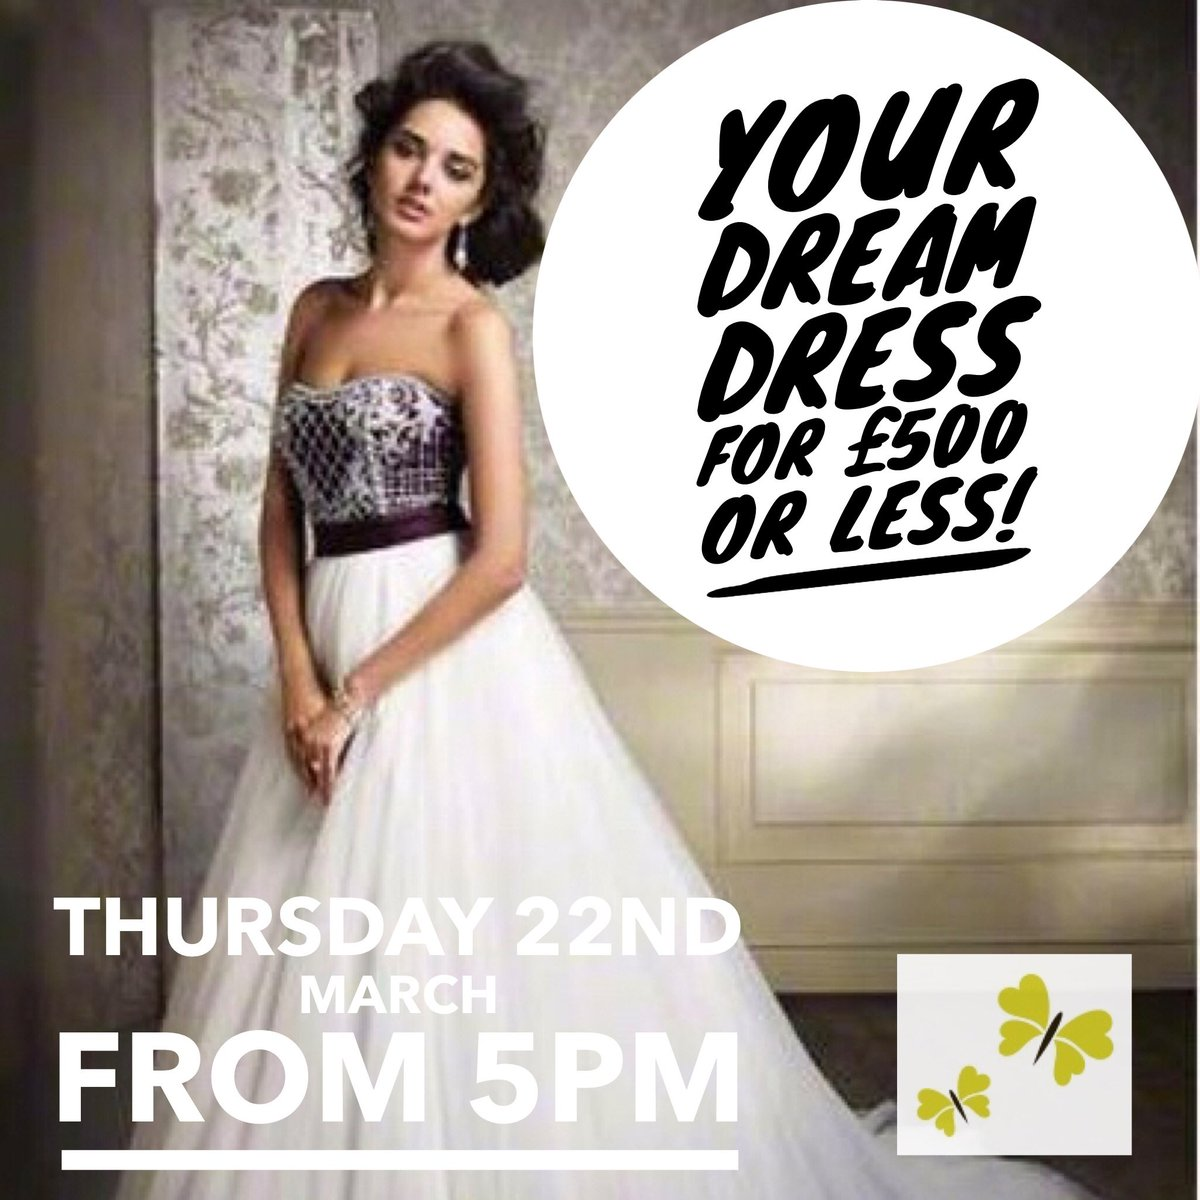 All Sale Dresses Will Be GBP500 Or Less Doors Open At 5pm Designer Wedding And Bridesmaids Weddingdresssale Plymouth Devon Amicabridalboutique